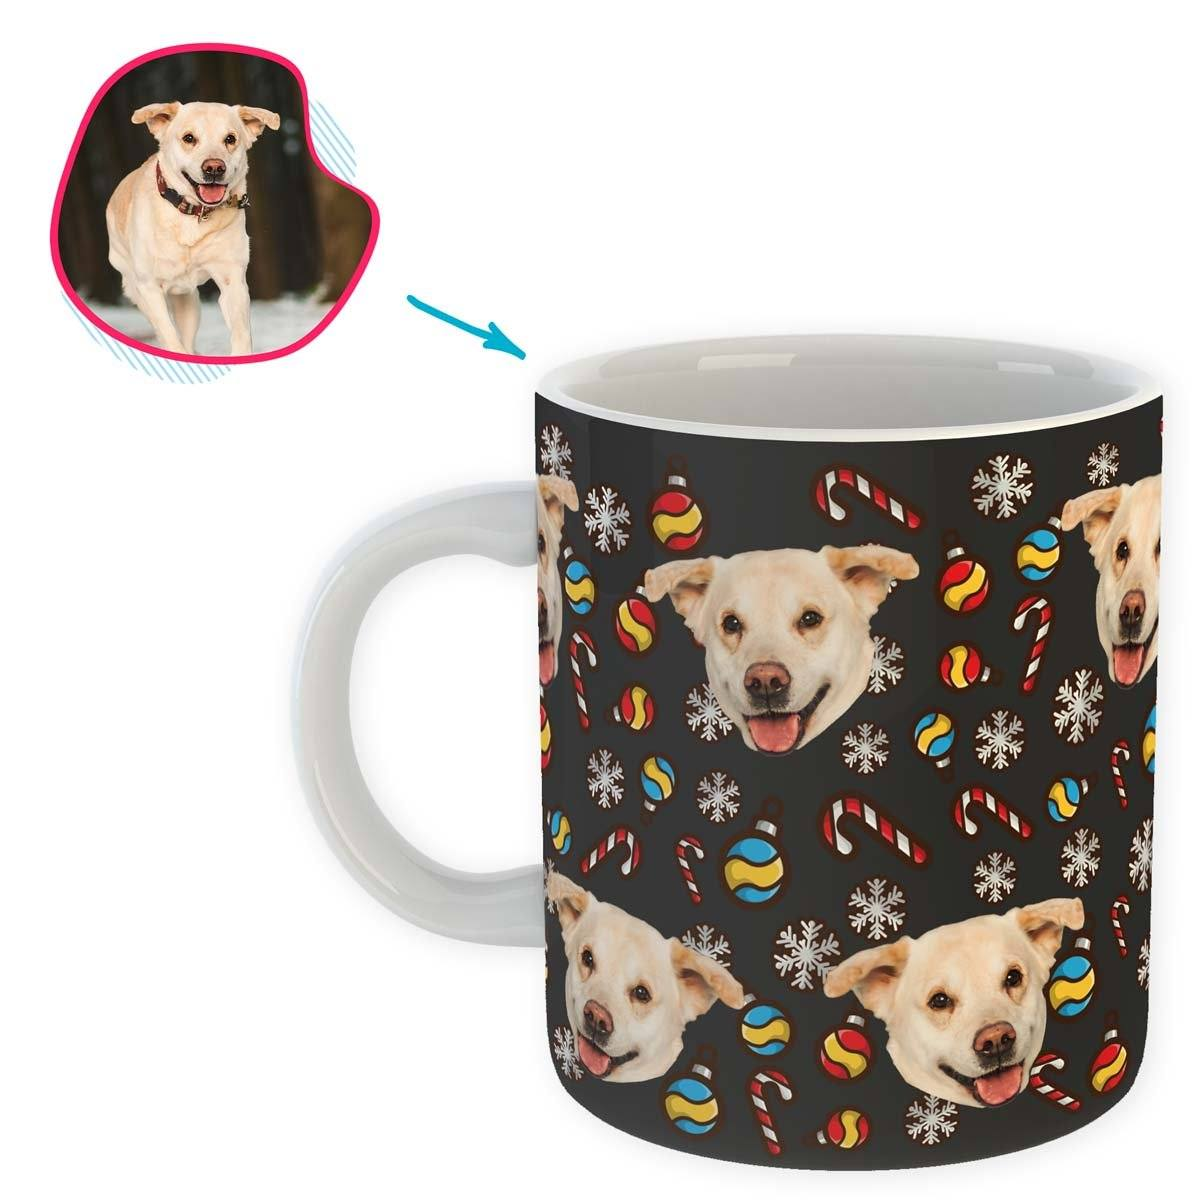 dark Christmas Tree Toy mug personalized with photo of face printed on it